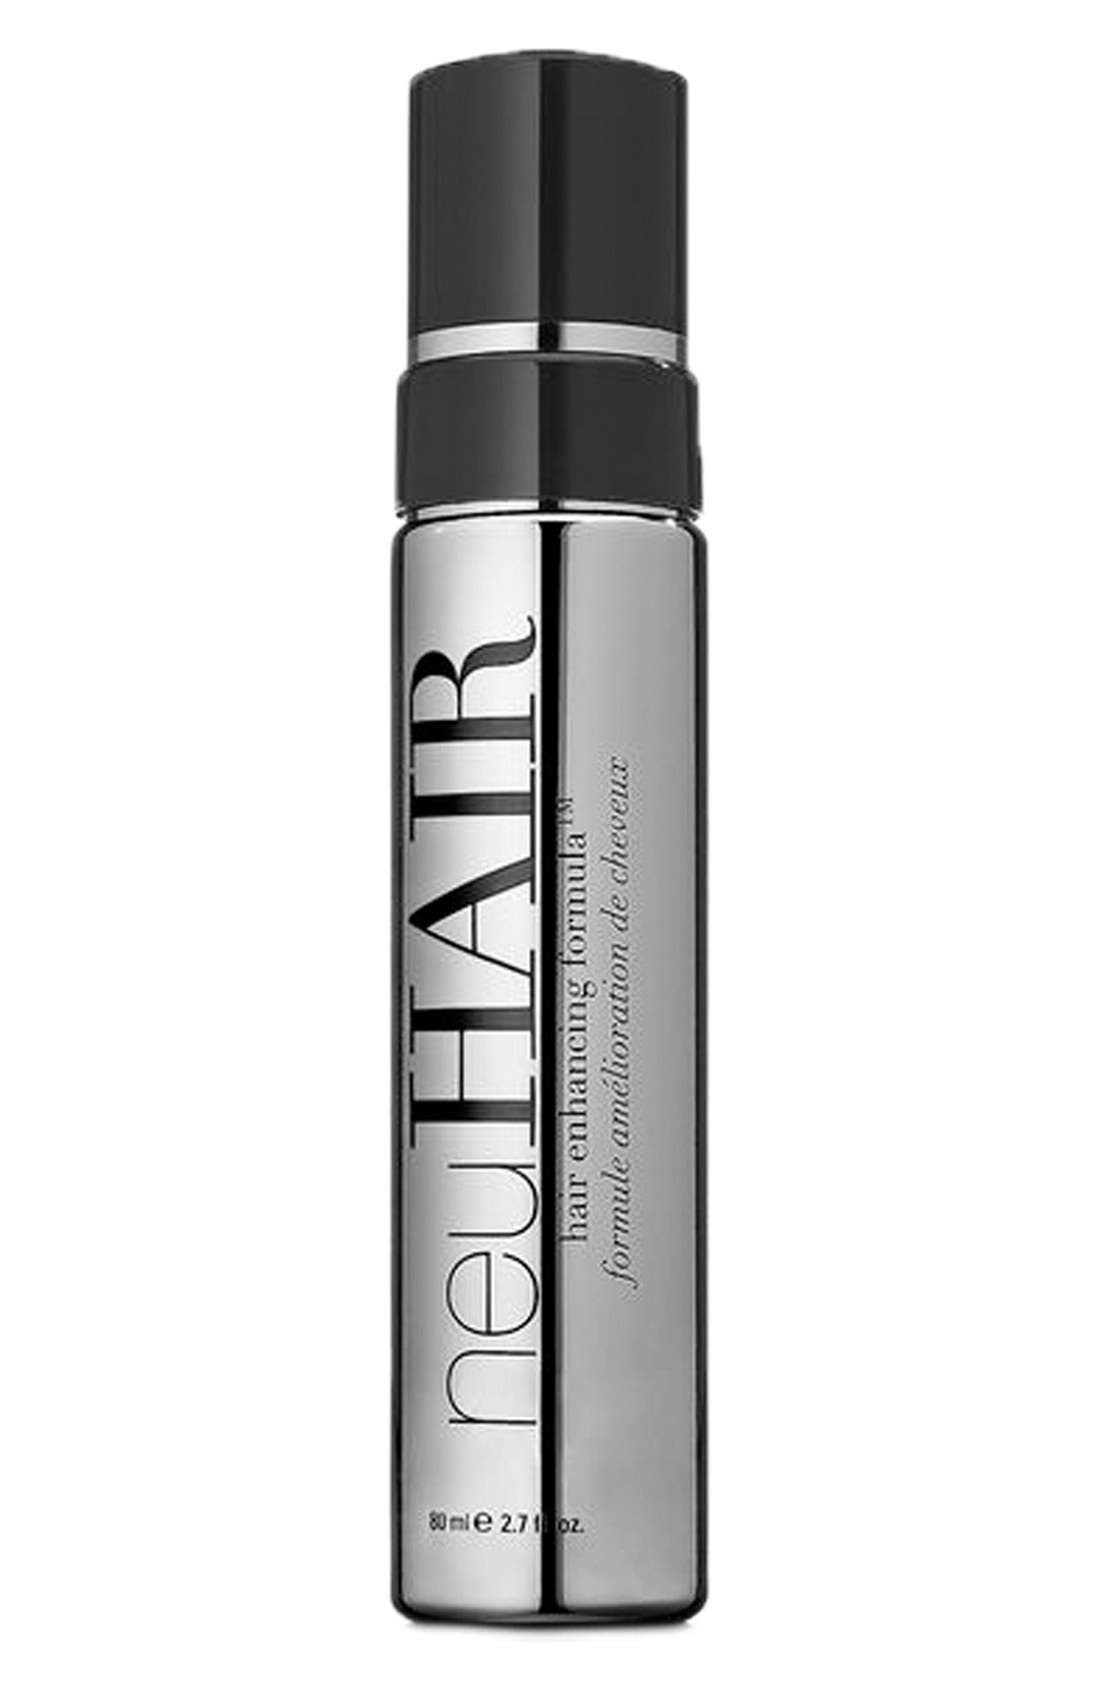 neuLASH® by Skin Research Laboratories 'neuHAIR' Hair Enhancing Formula